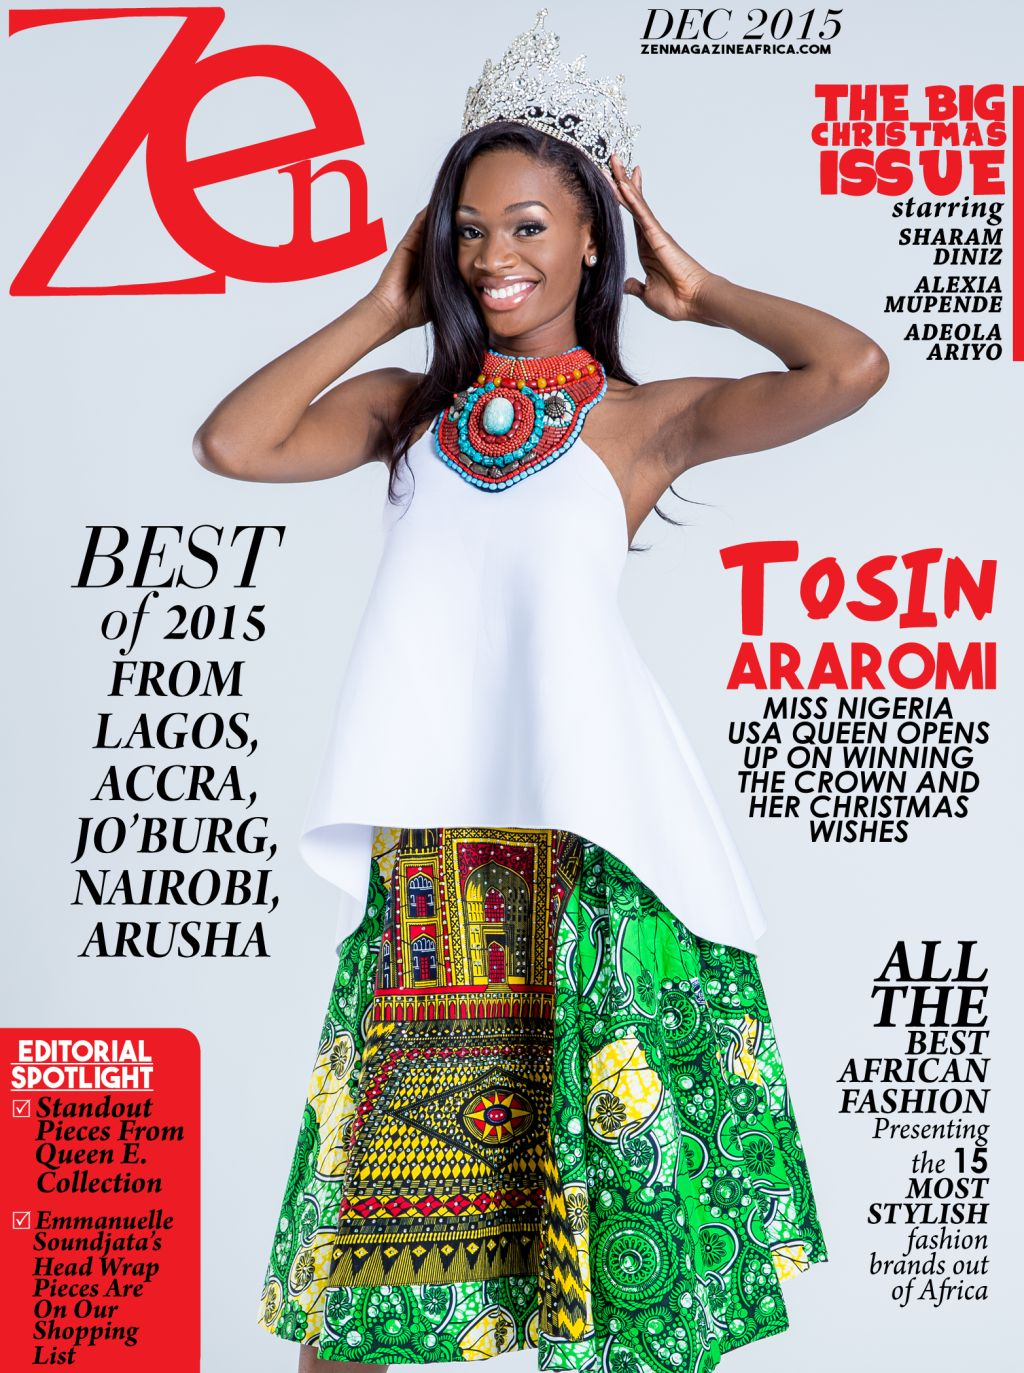 Tosin Araromi at Zen Magazine - BellaNaija - December 2015